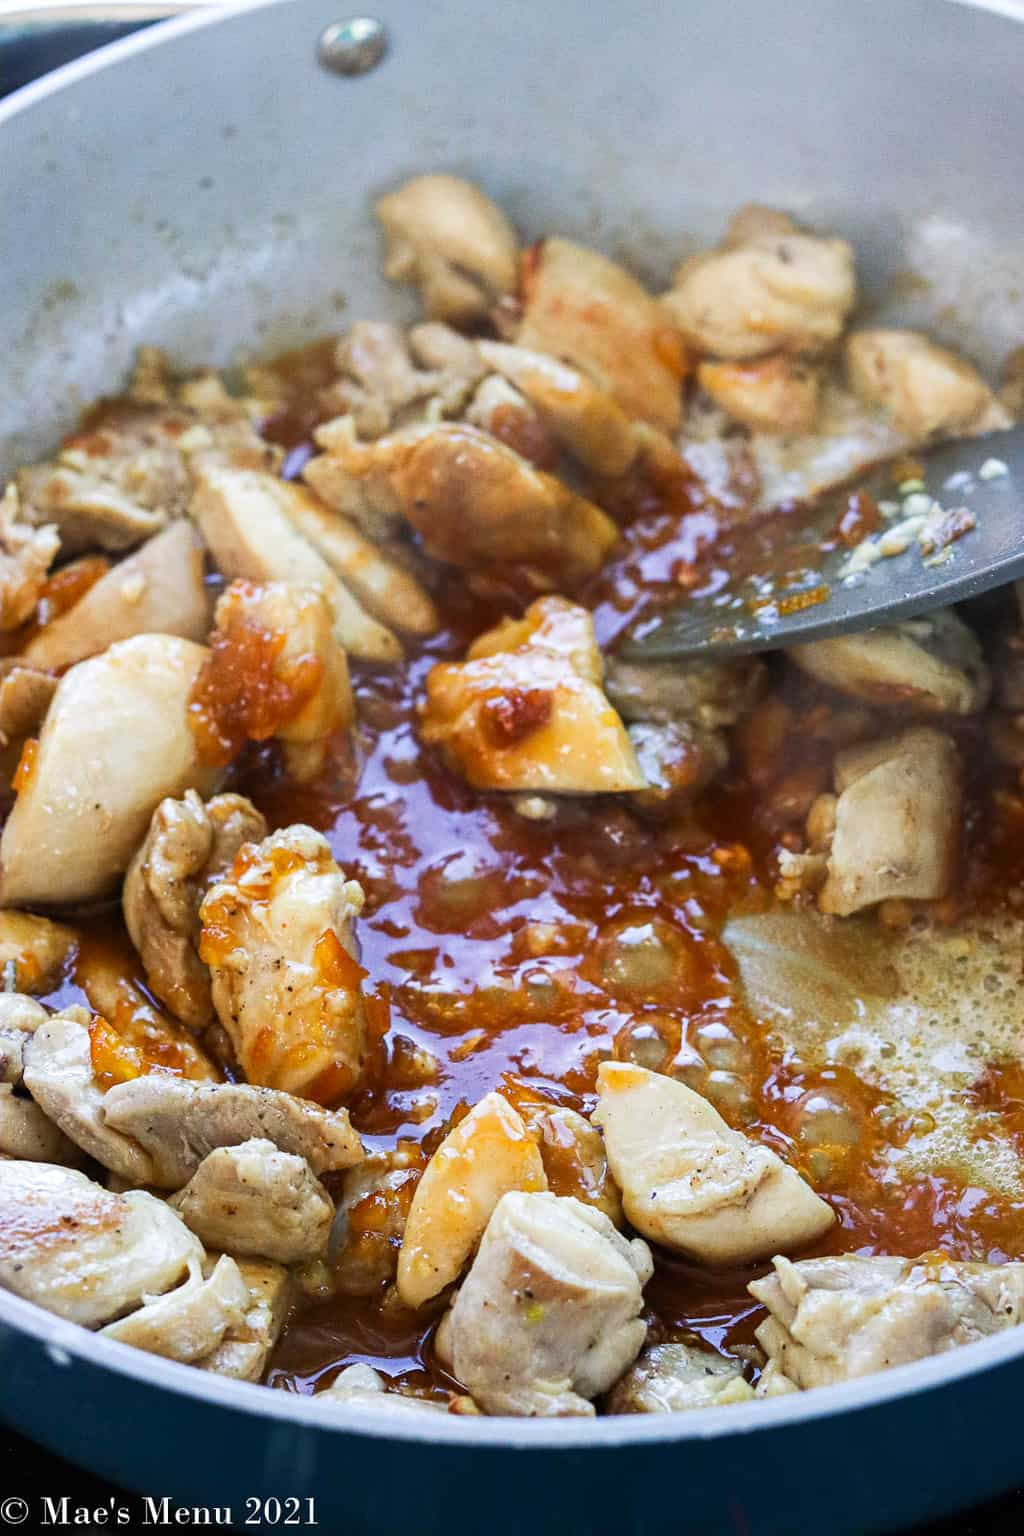 Chicken and orange marmalade simmering in a saute pan